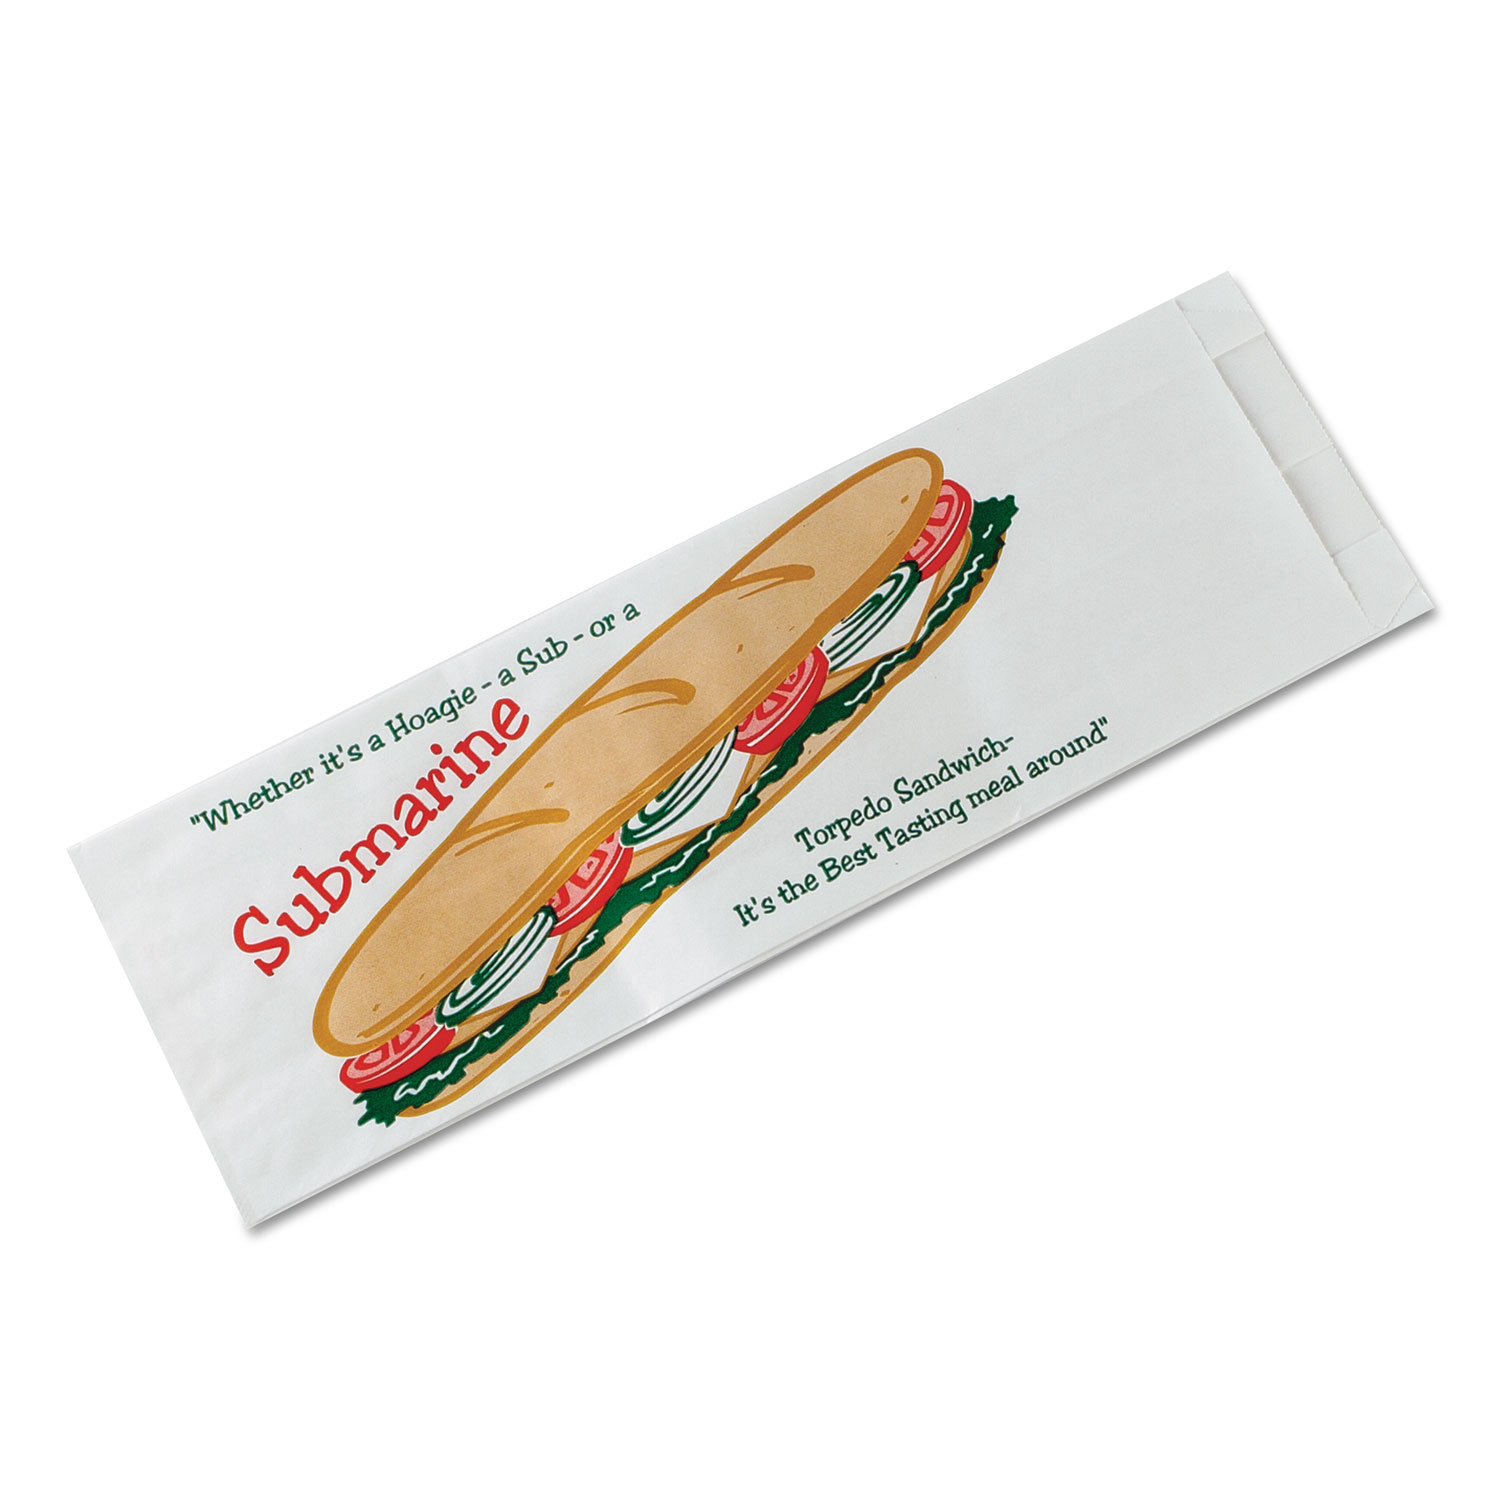 Submarine Sandwich Bags, 4 1/2 x 2 x 14, White Preprinted Submarine, 1000/Carton